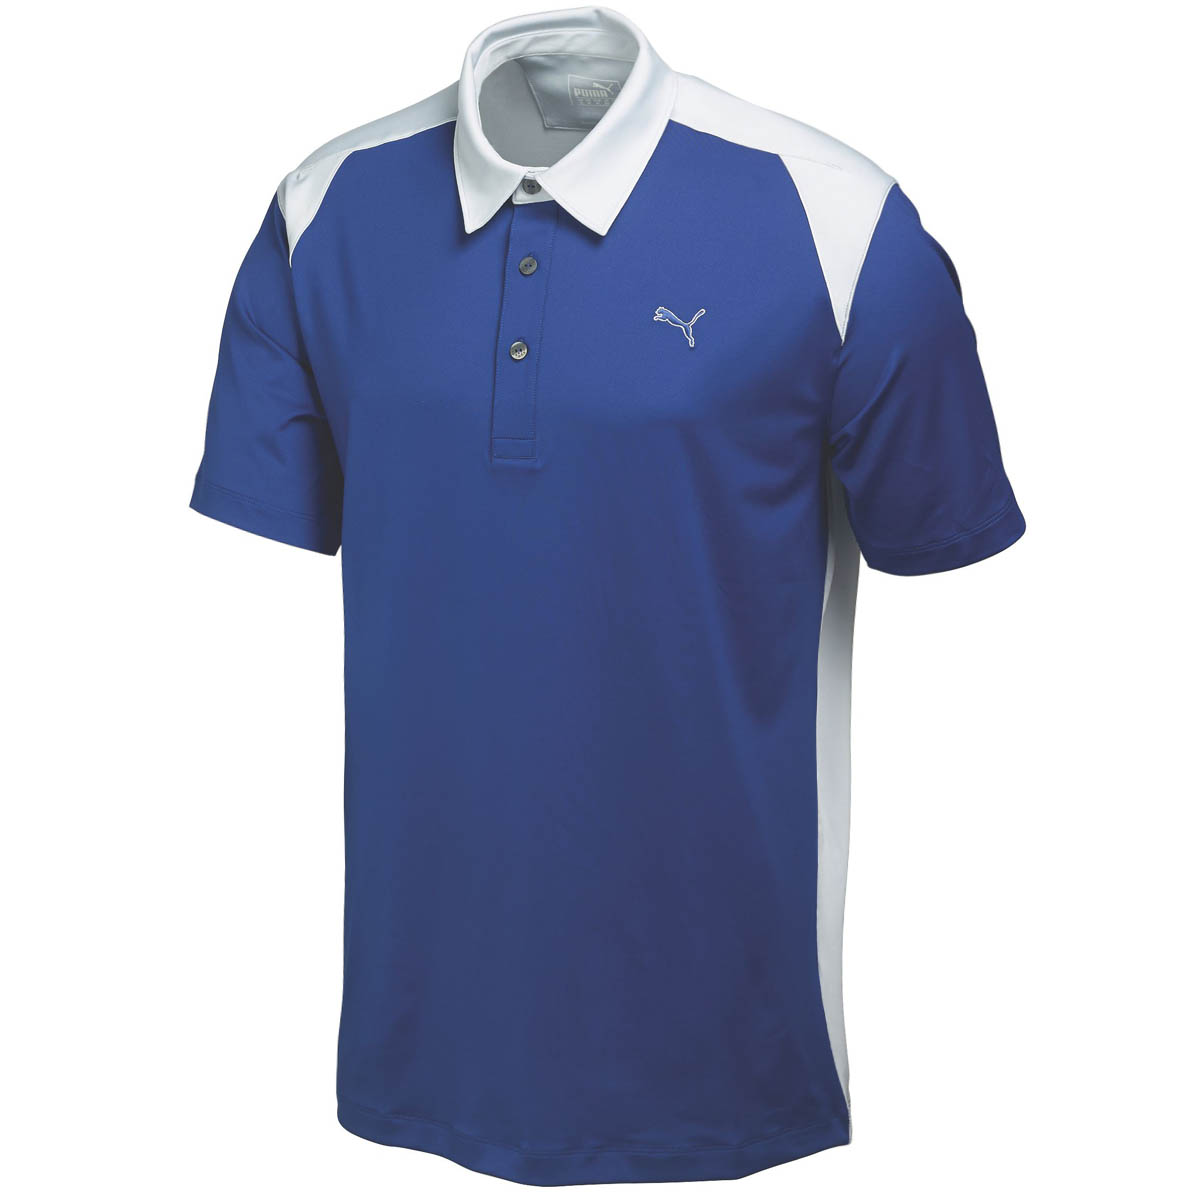 Puma golf mens blocked polo shirt 569107 stretch drycell for Mens puma golf shirts